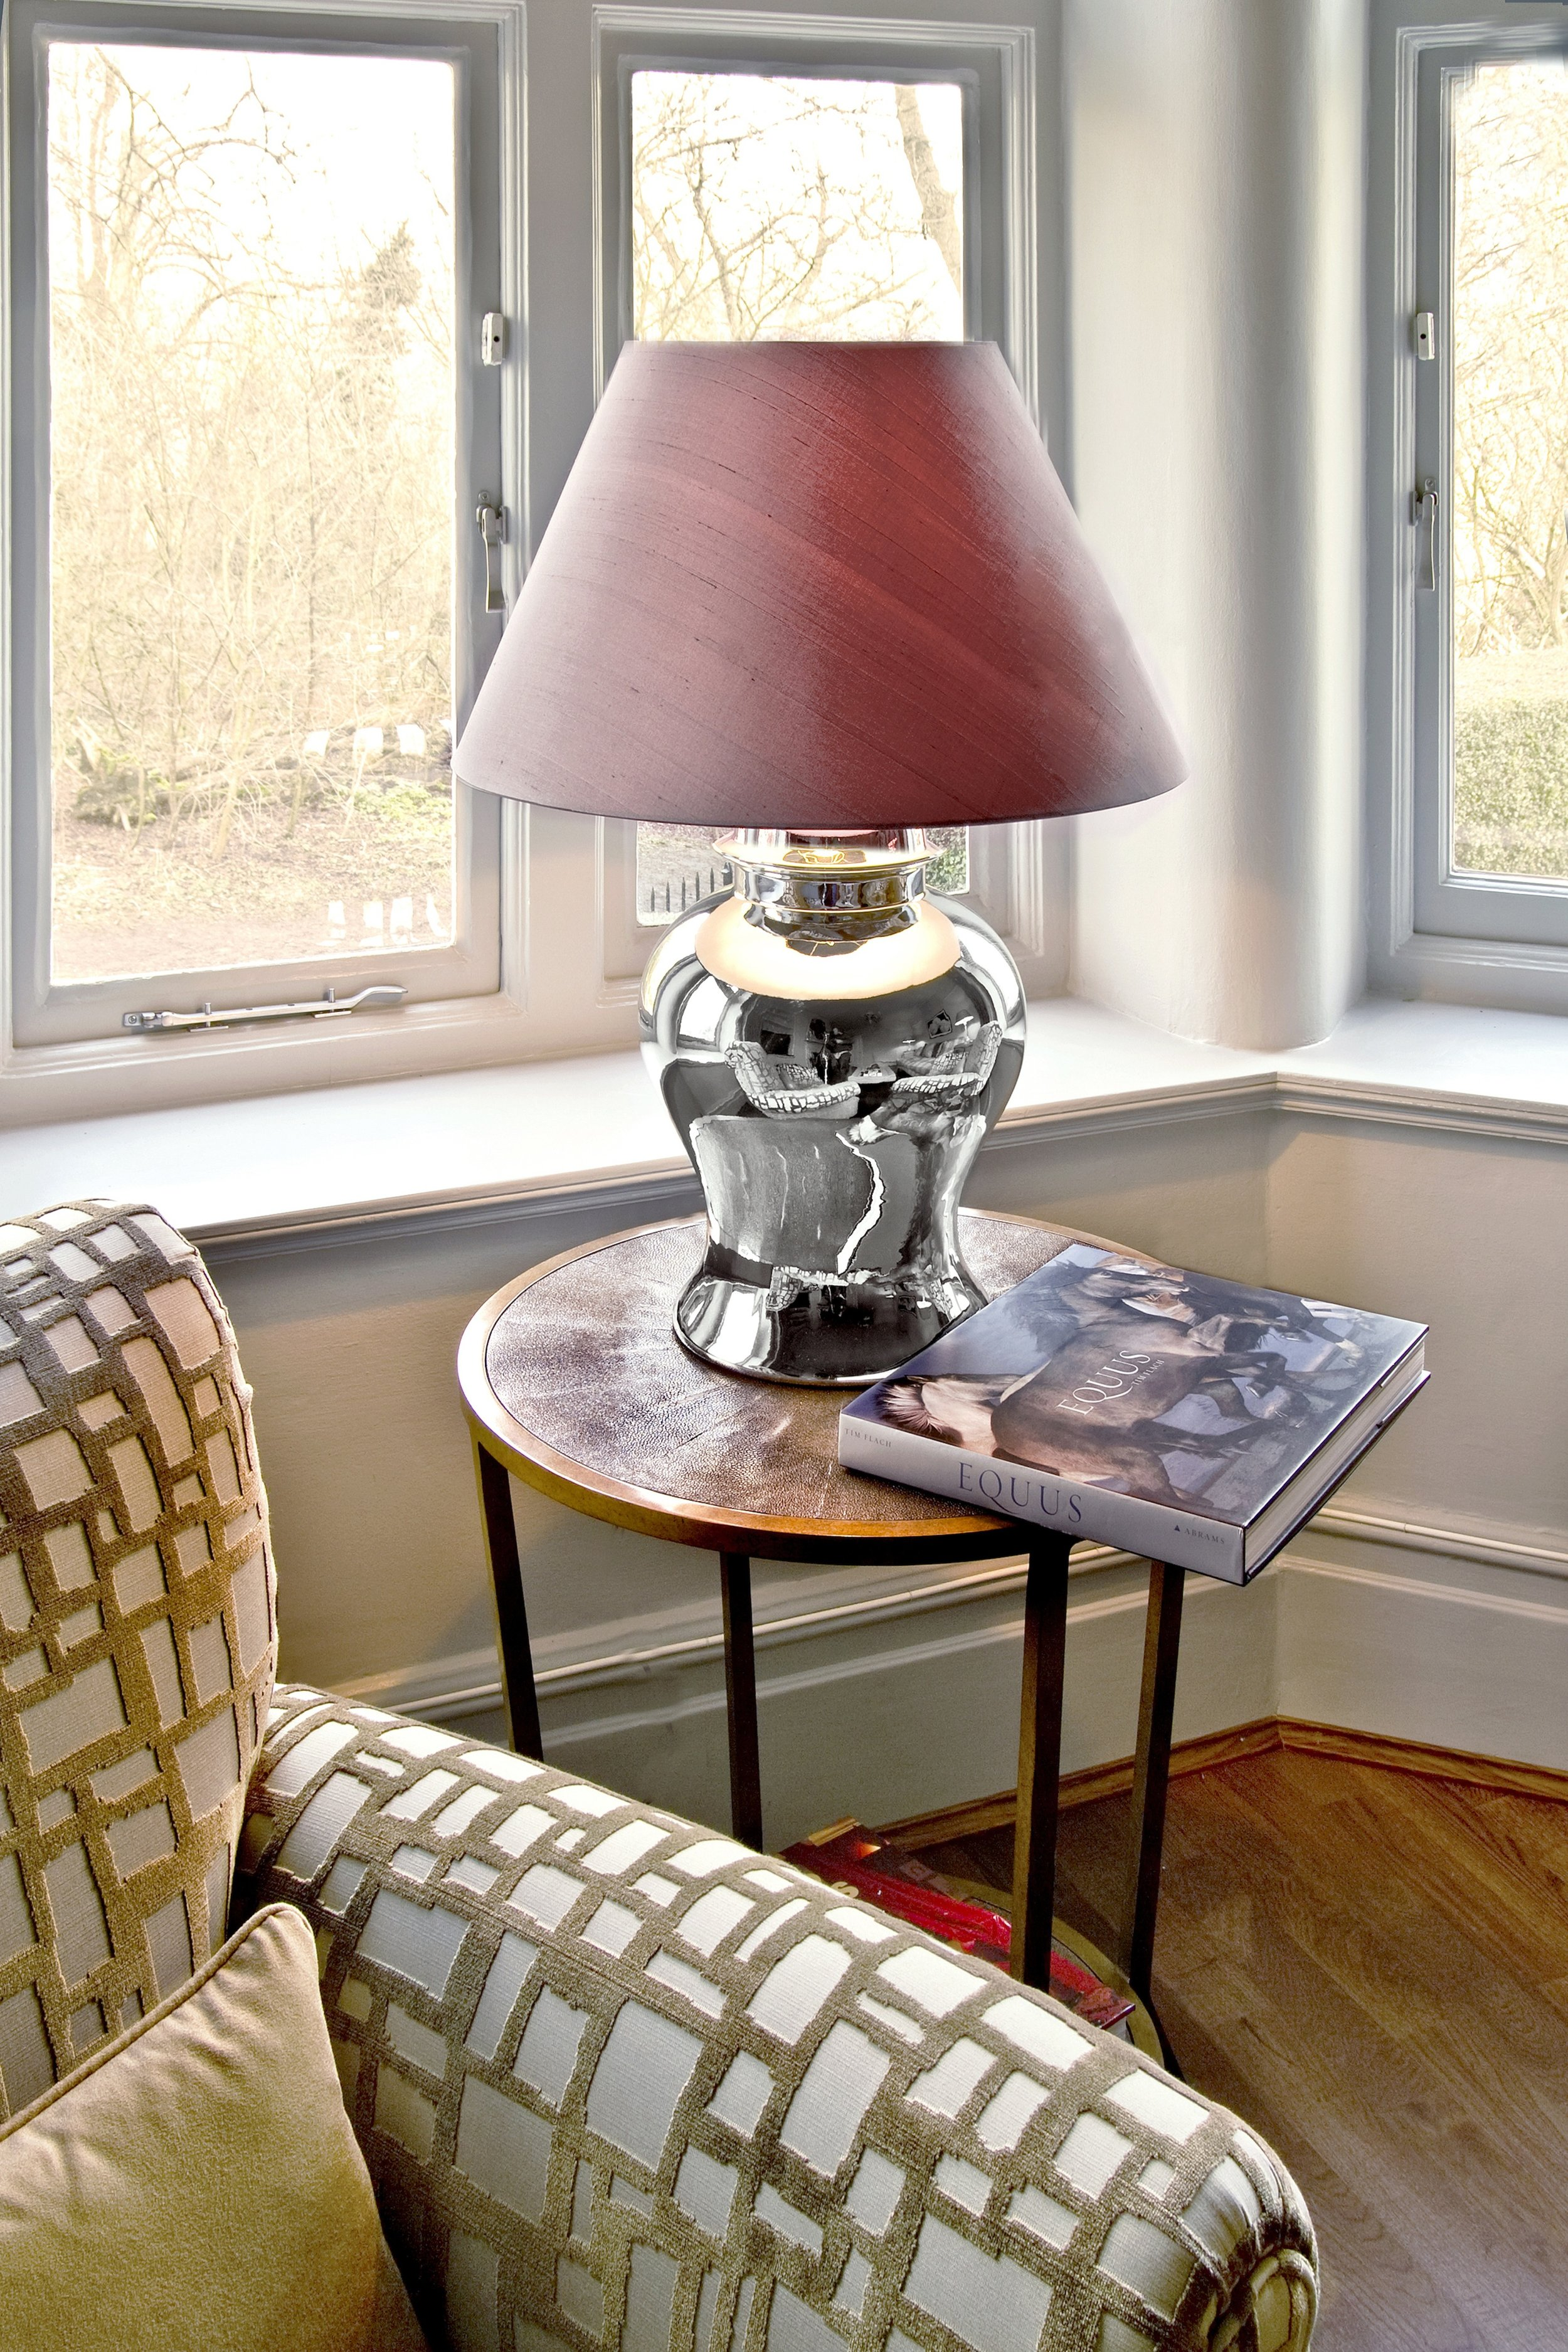 3-Drawing room-detail chair and lamp-BIID.jpg